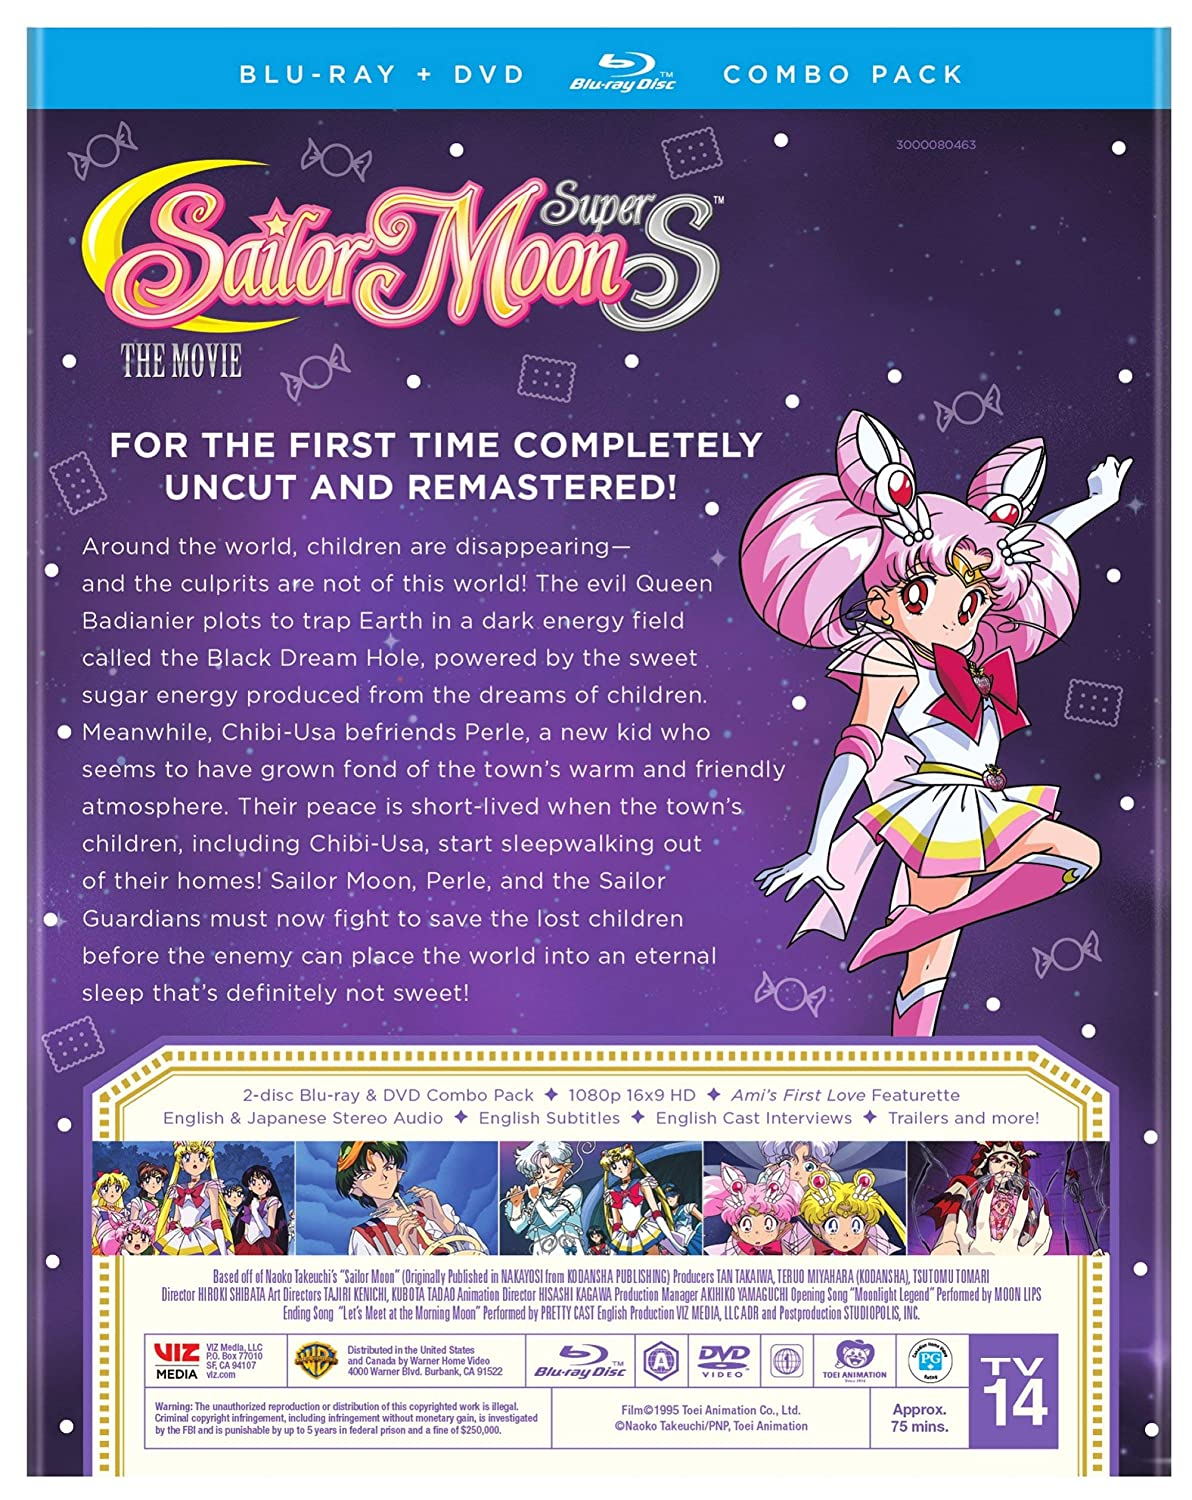 Sailor Moon SuperS: The Movie Blu-ray/DVD 91Ikq8t7uBL._SL1500_